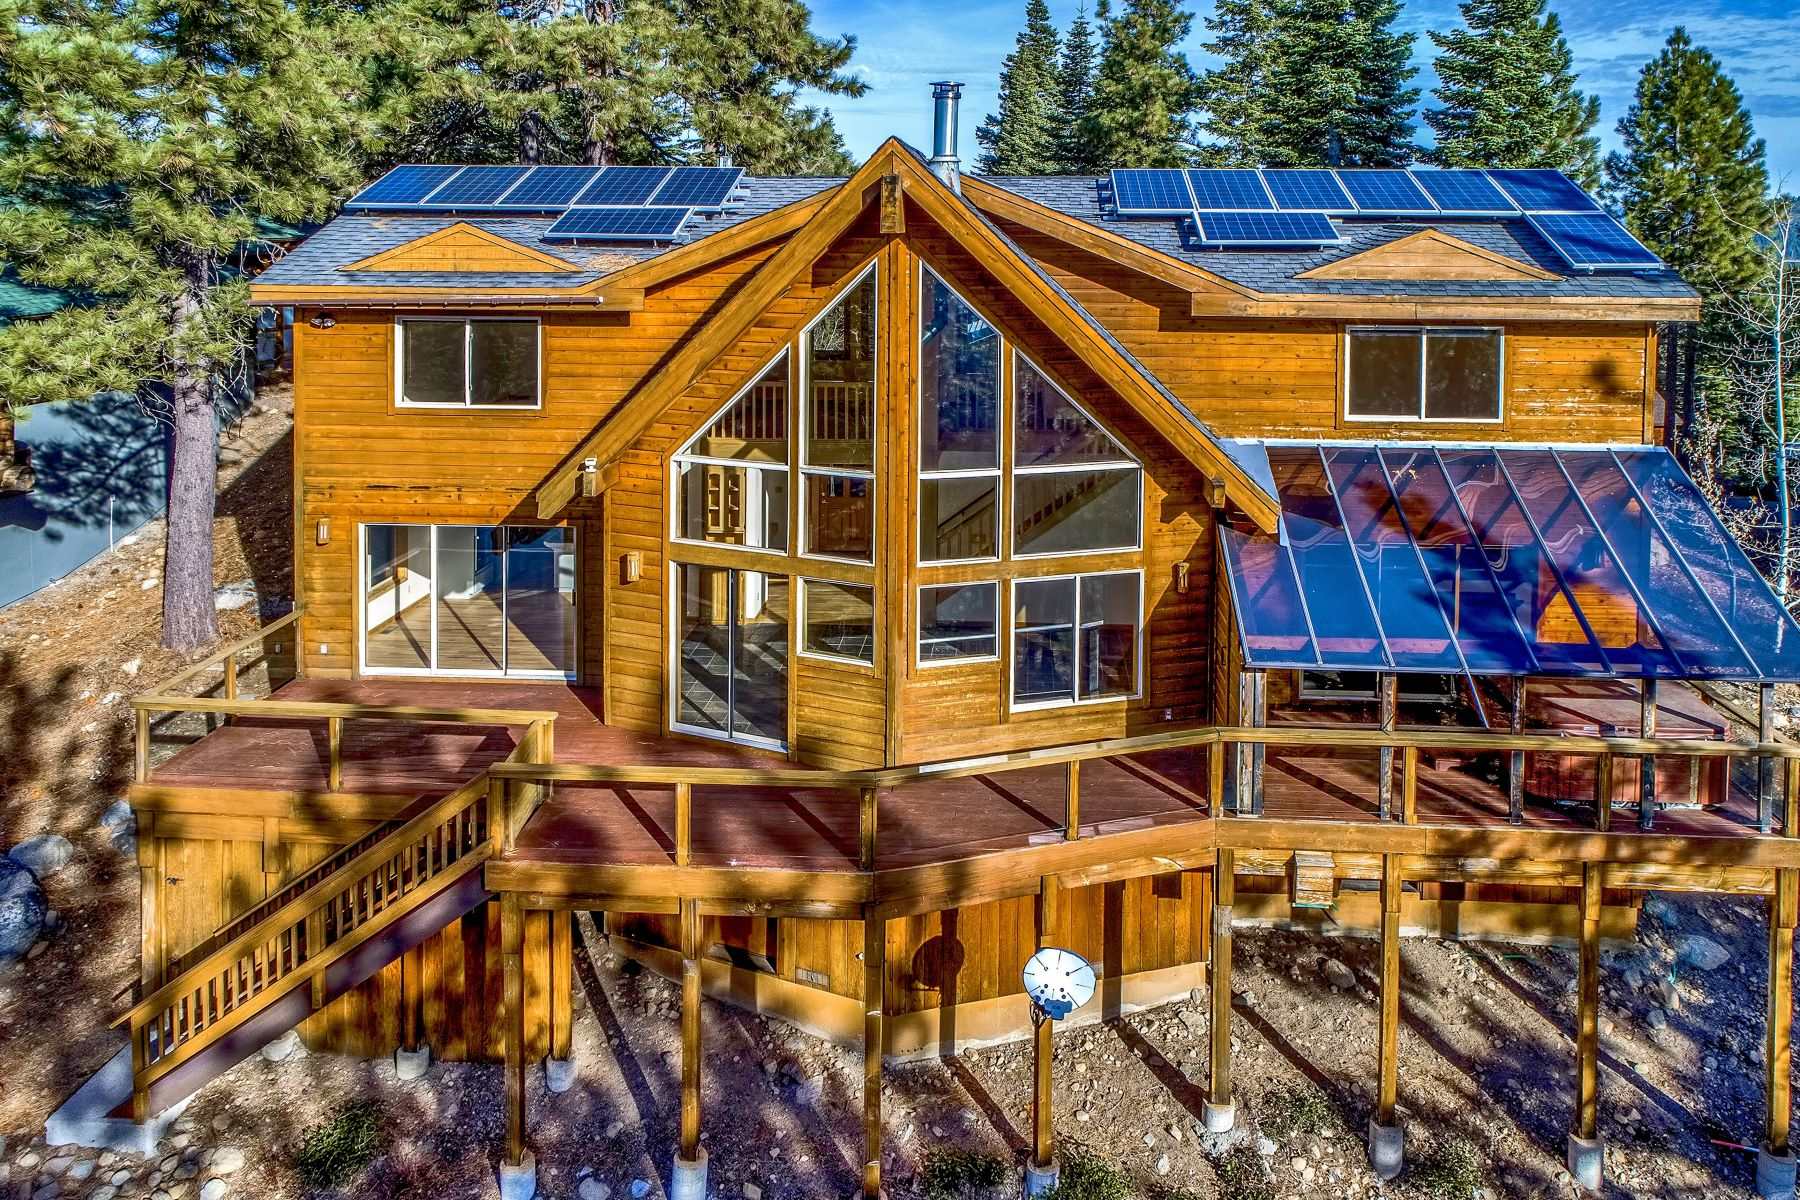 Single Family Homes for Active at 11896 Skislope Way, Truckee California 96161 11896 Skislope Way Truckee, California 96161 United States